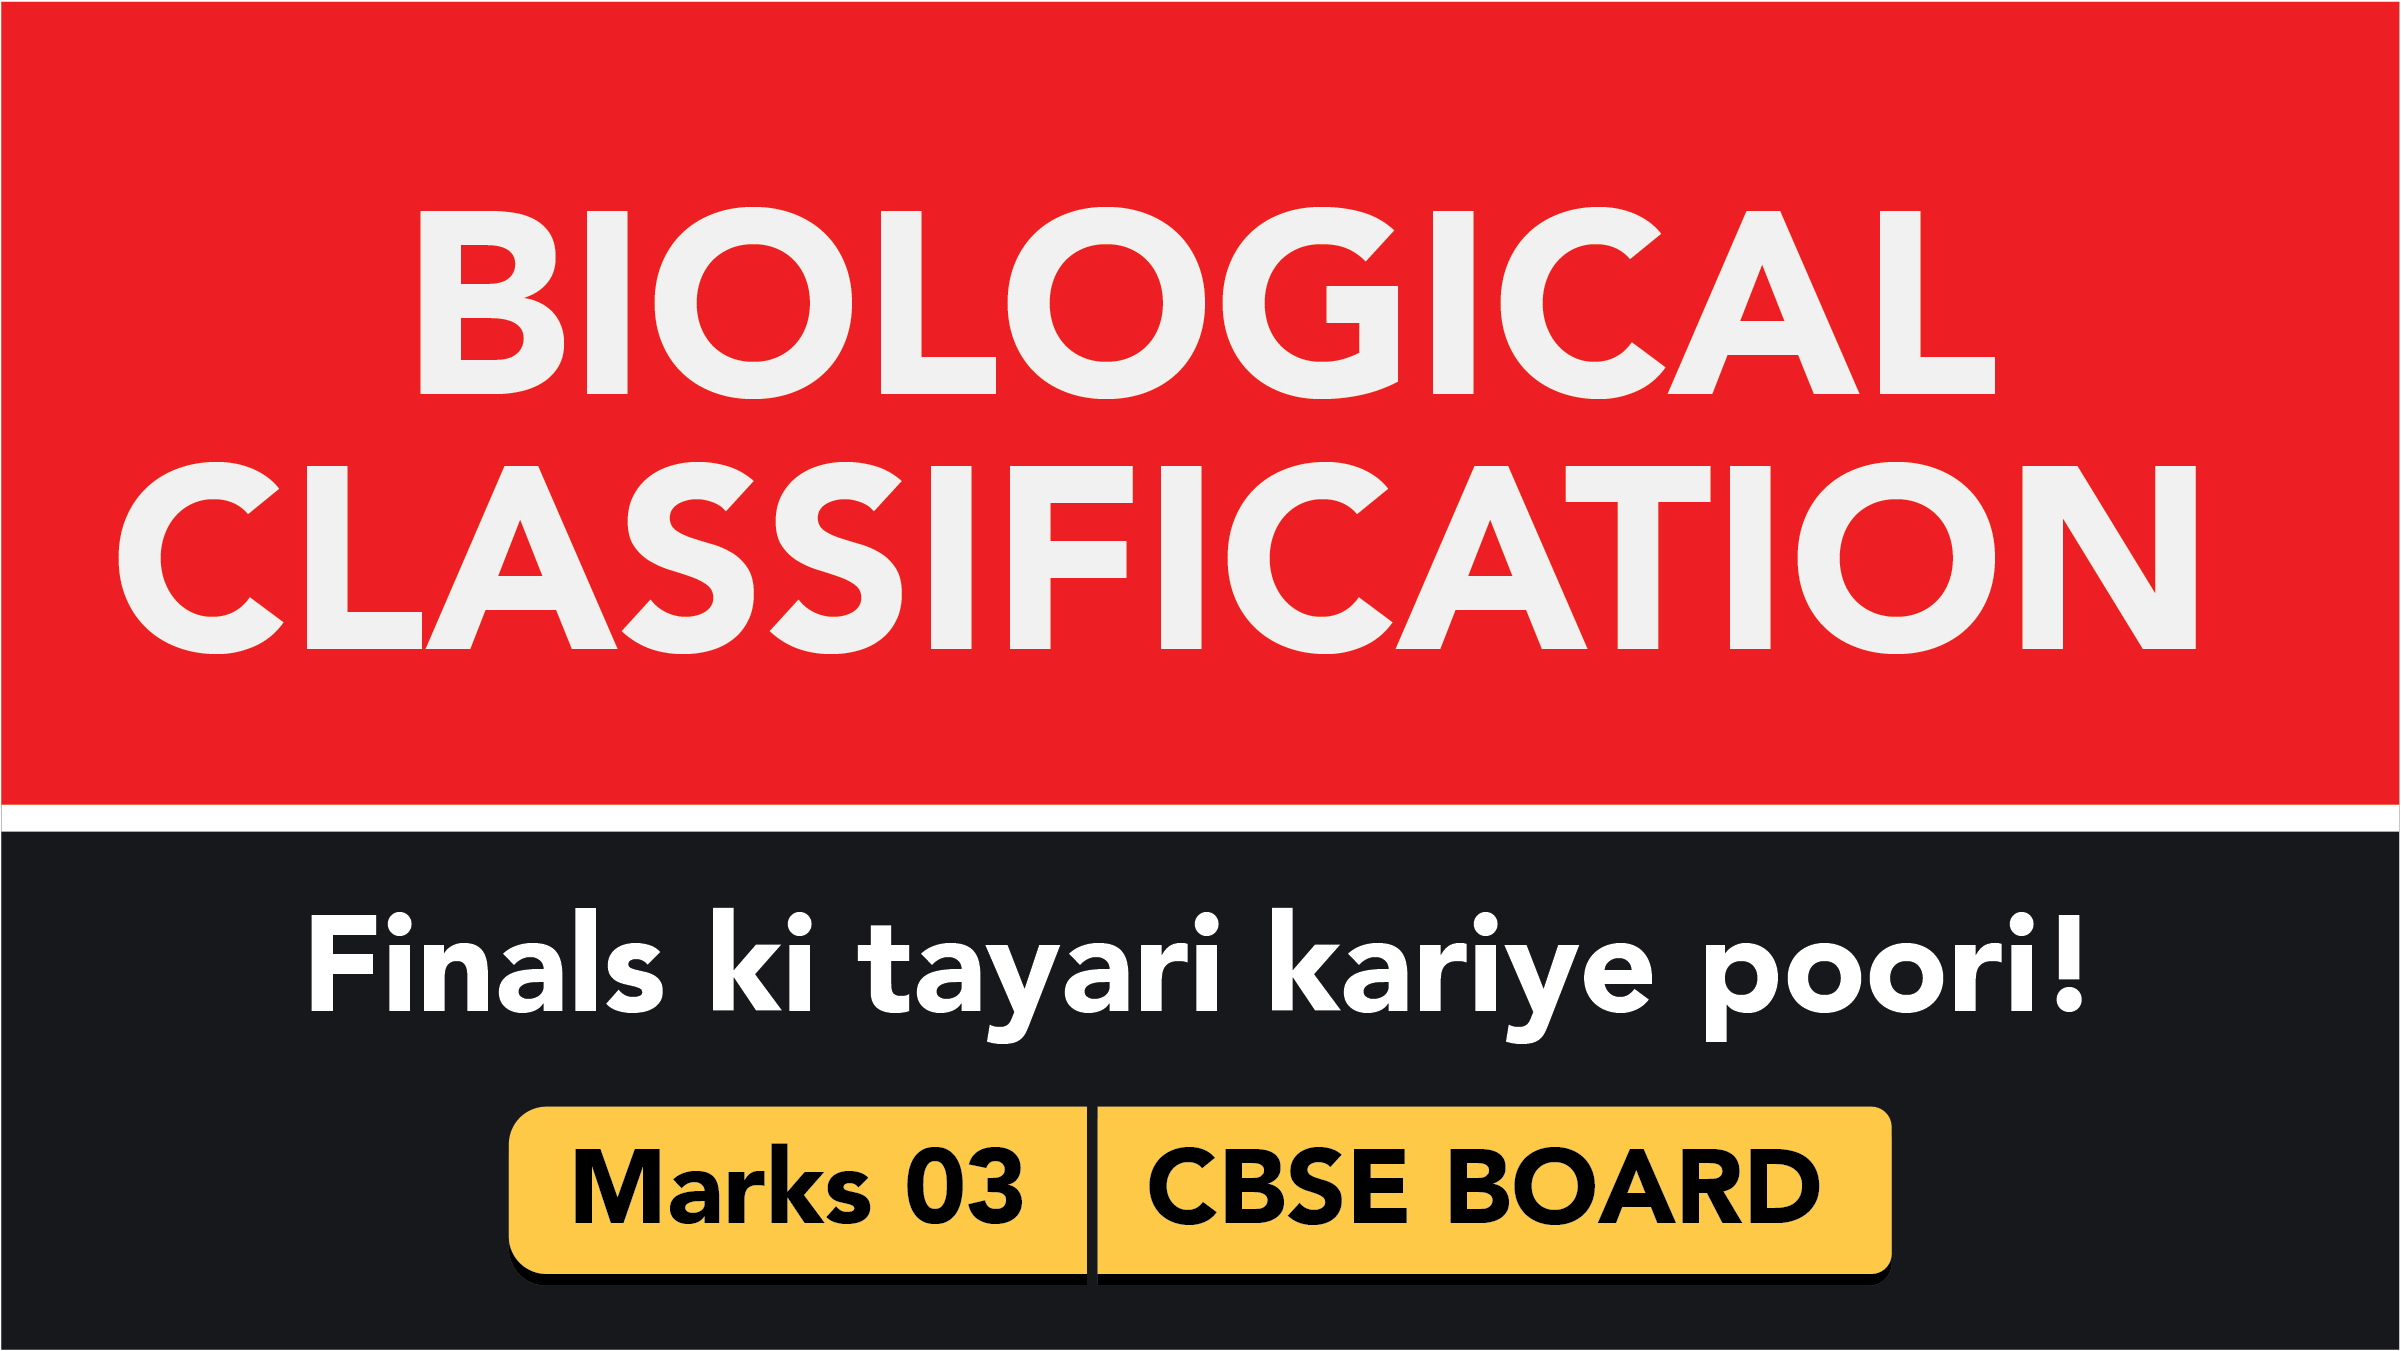 CBSE Board Class 11 BIOLOGICAL CLASSIFICATION || Weightage and Important Topics